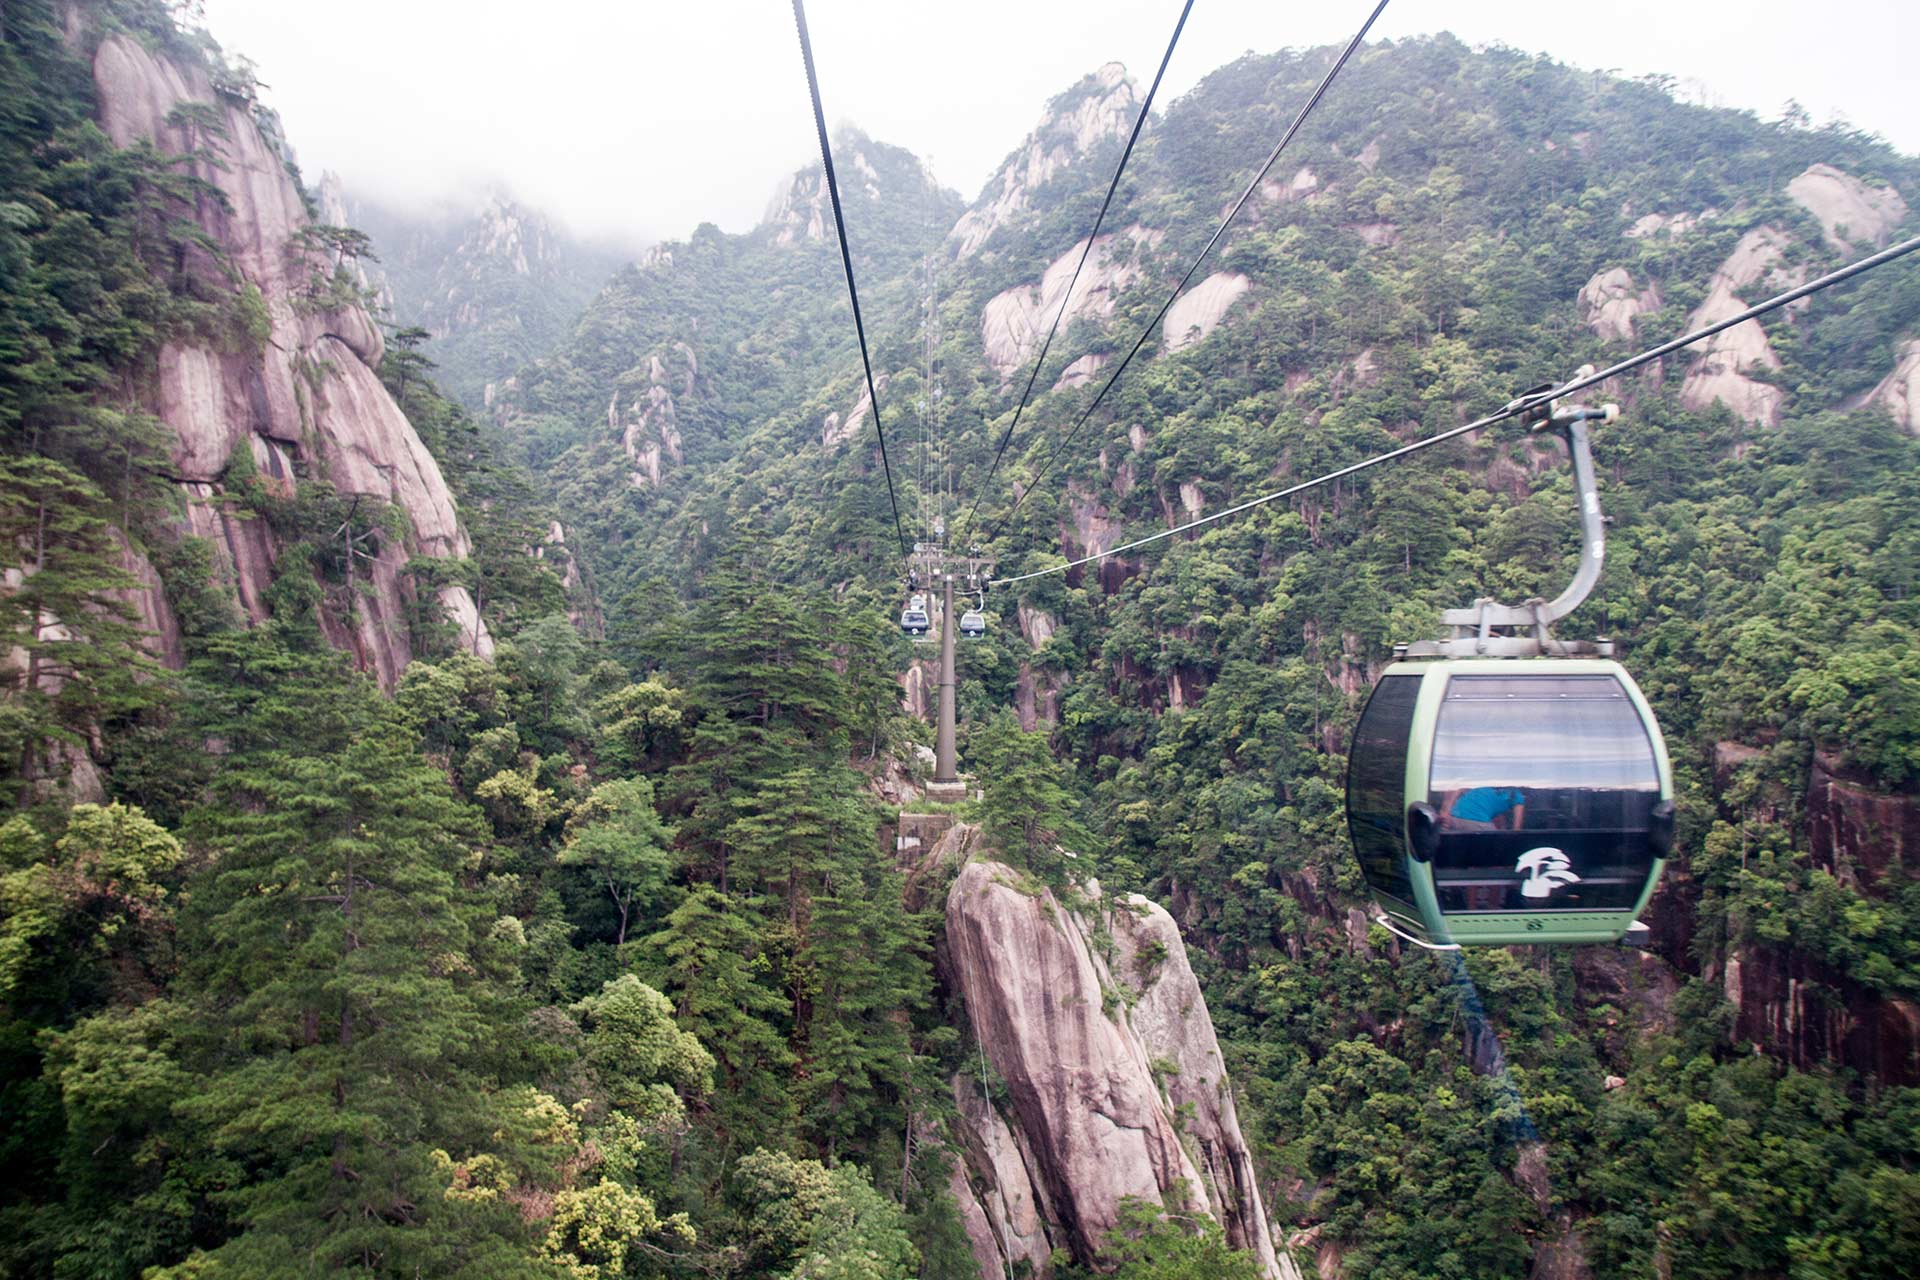 Cloud Valley Cableway, Mount Huangshan, Anhui, China